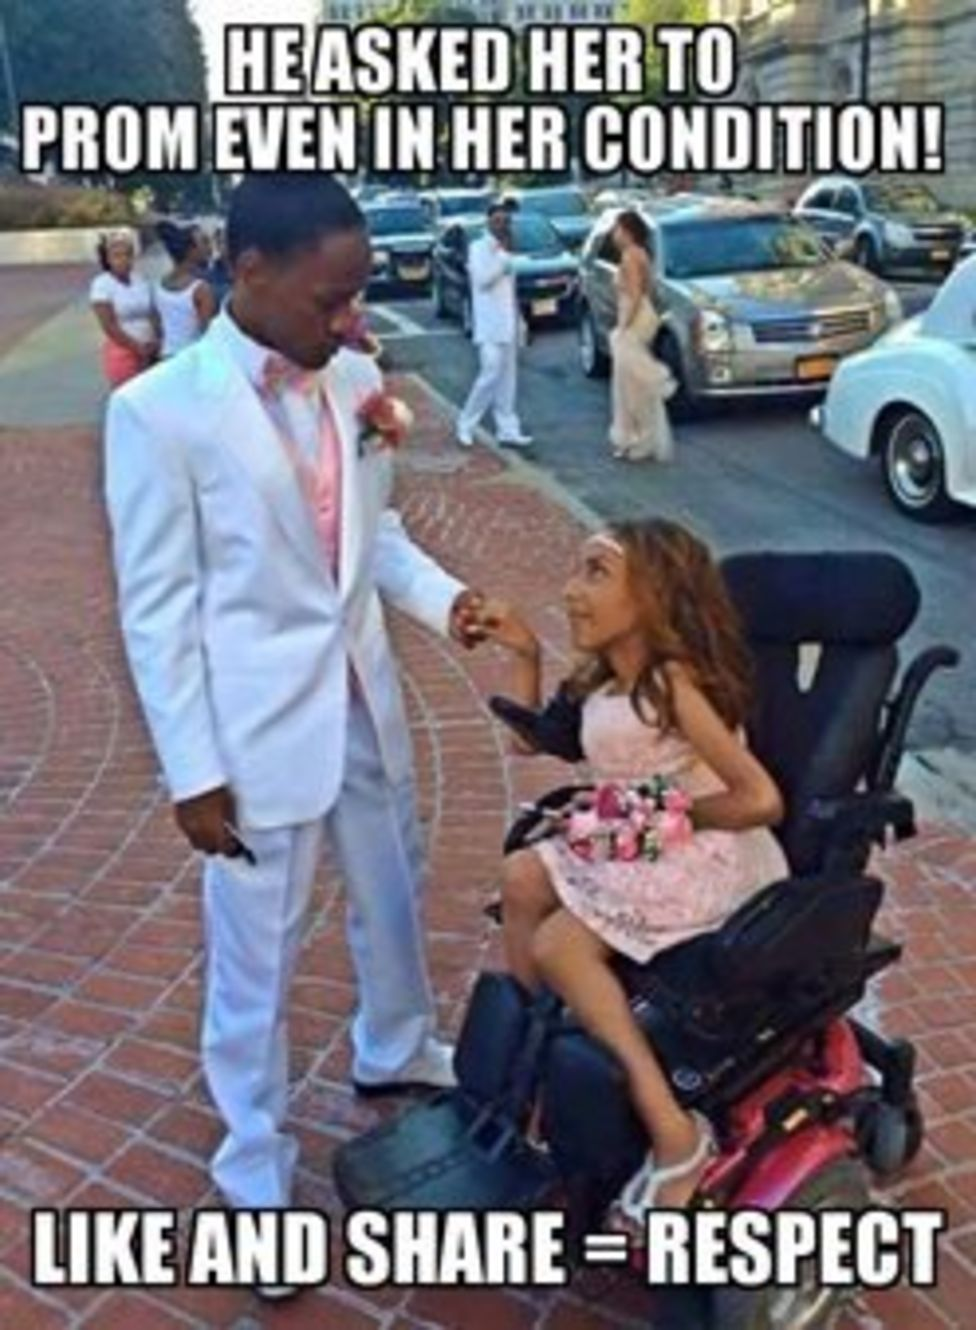 """A young man in a white tux stands with a young woman in a prom dress in a wheelchair. There are other going to prom behind them. The photo says """"He asked her to prom even in her condition! Like and share = Respect"""""""